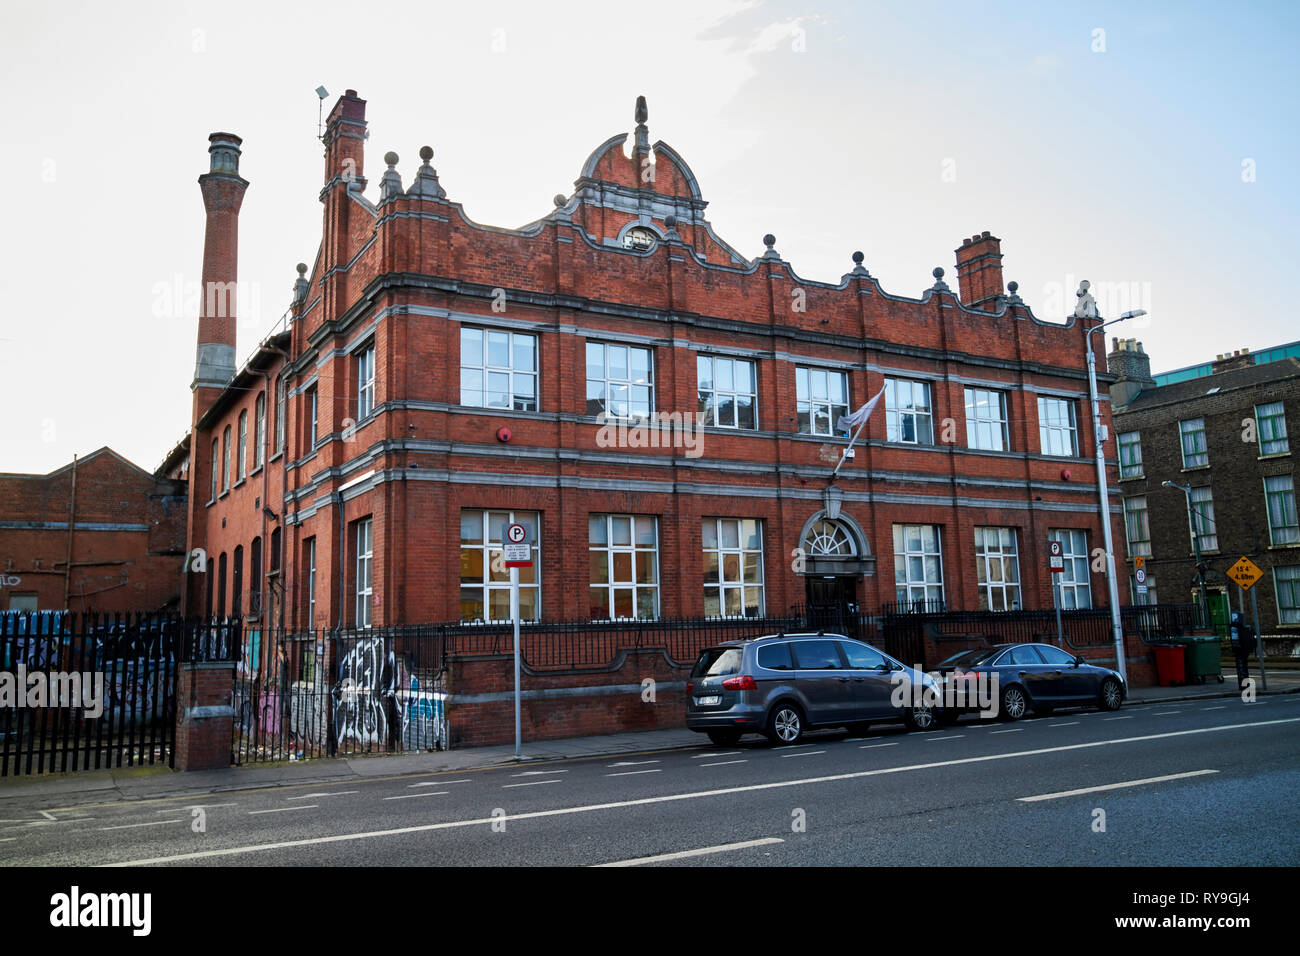 102-103 amiens street former post office now hq of tech startup pointy Dublin Republic of Ireland Europe - Stock Image